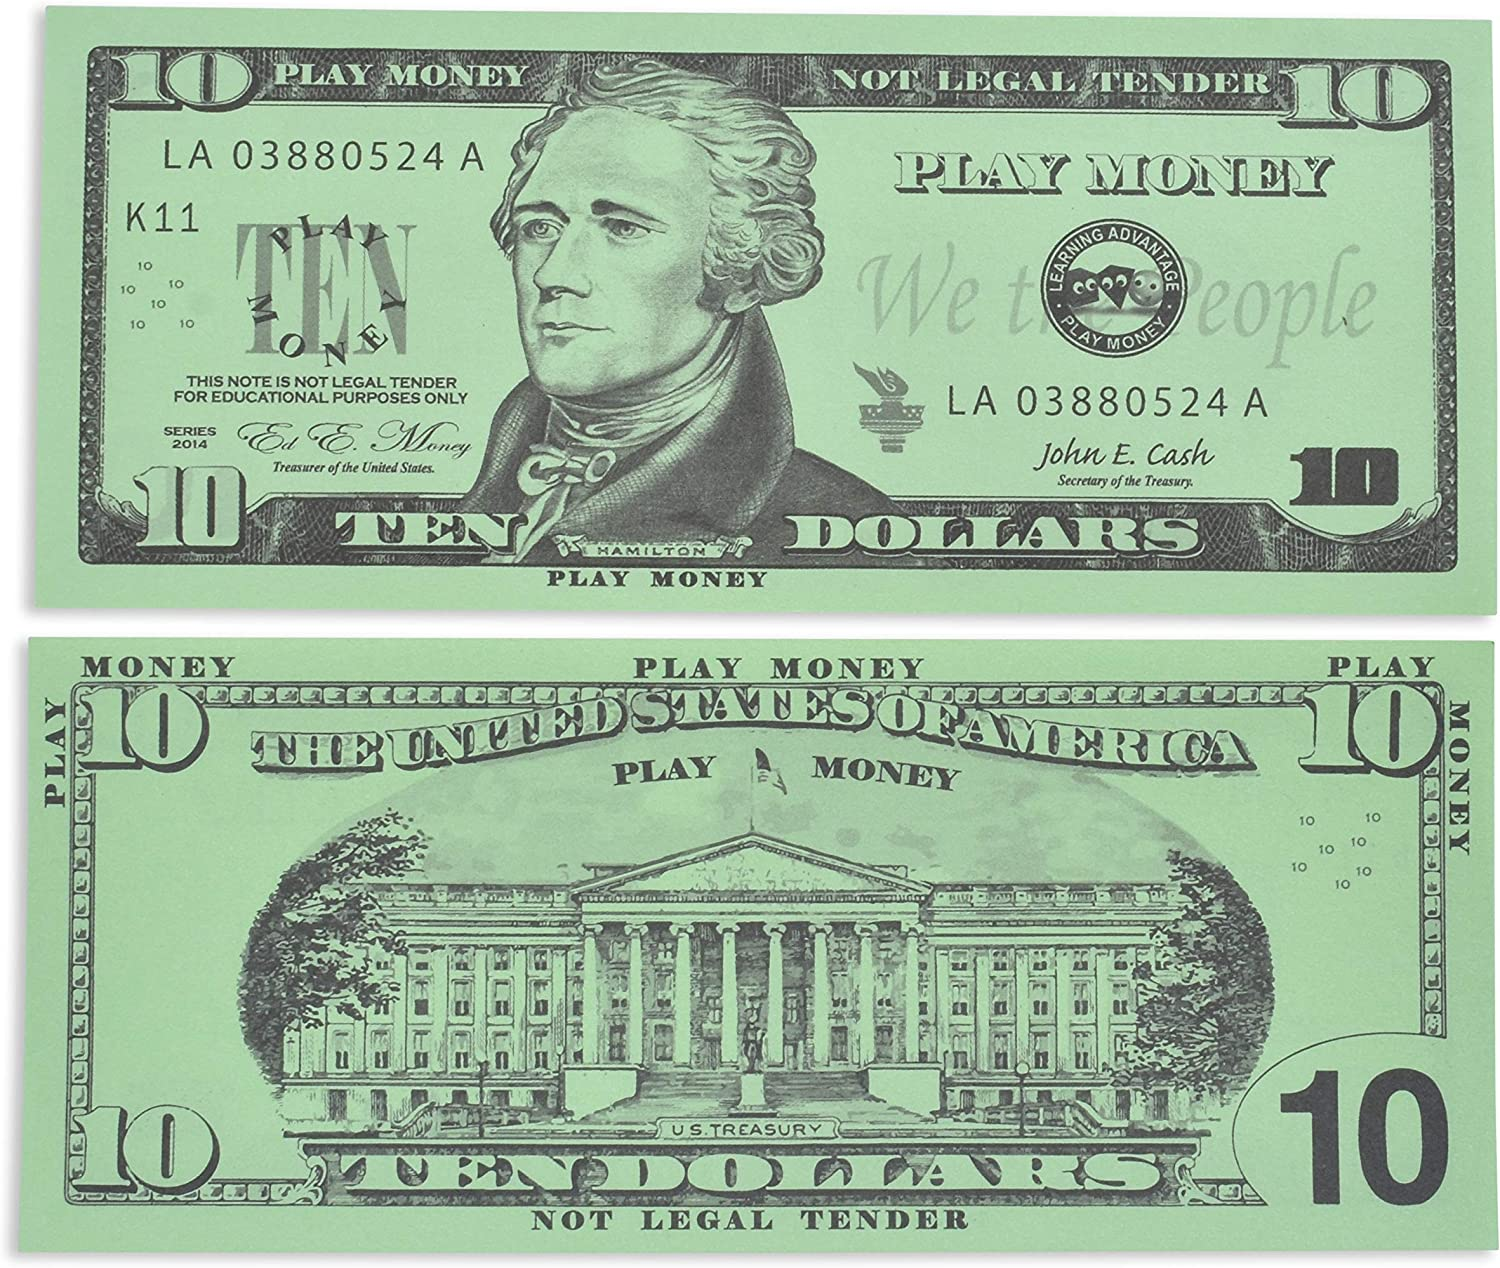 Learning Advantage Ten Dollar Play Bills - Set of 100 $10 Paper Bills - Designed and Sized Like Real US Currency - Teach Currency, Counting and Math with Play Money